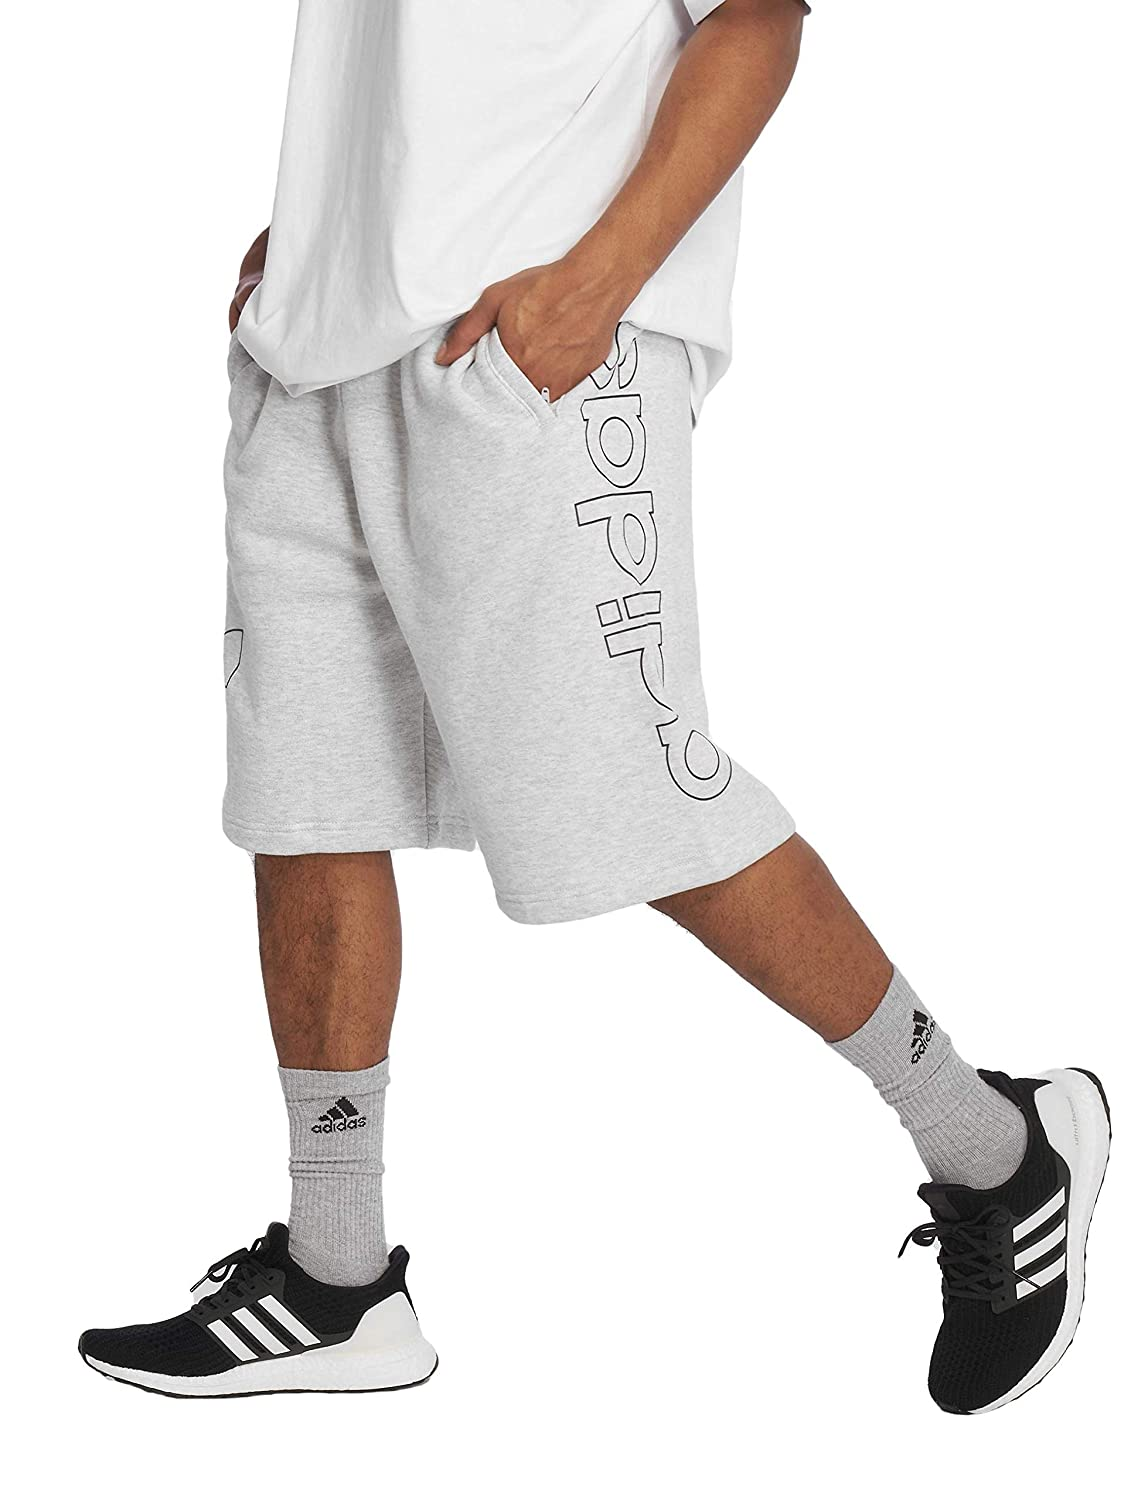 adidas Off Court Shorts (1/2), Hombre, Light Grey Heather/Collegiate Navy, S